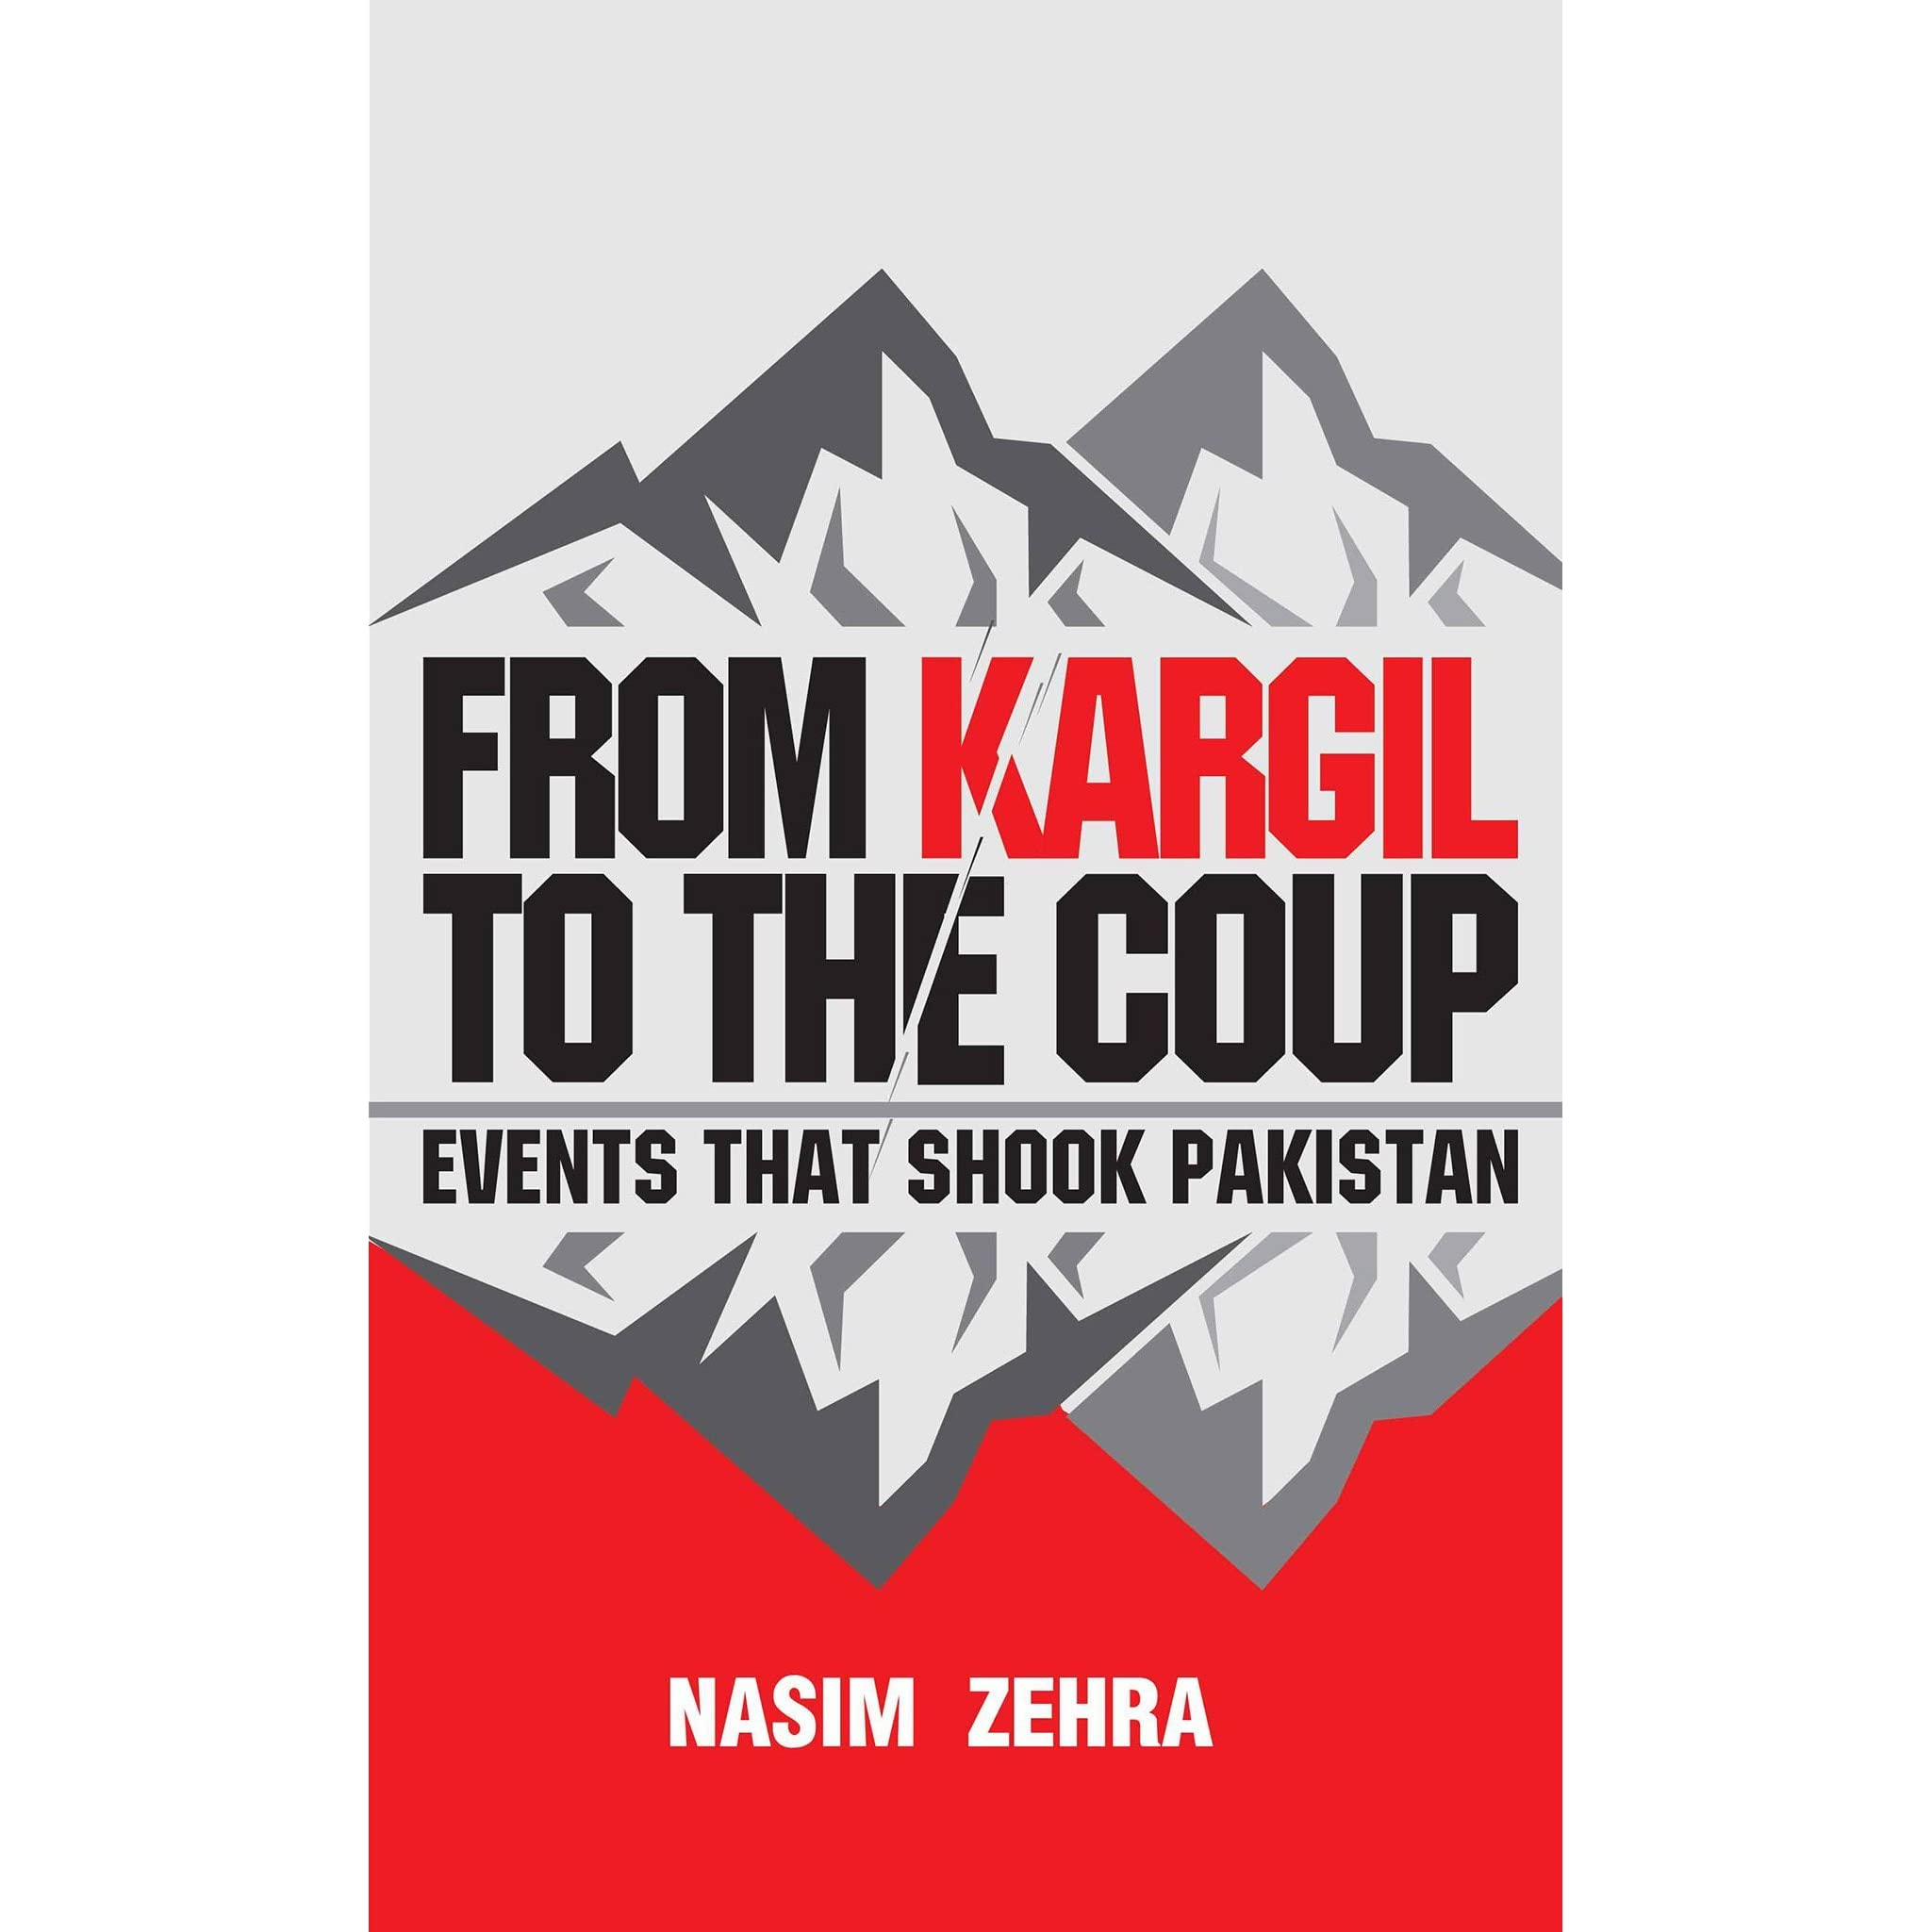 From Kargil to the Coup: Events that Shook Pakistan by Nasim